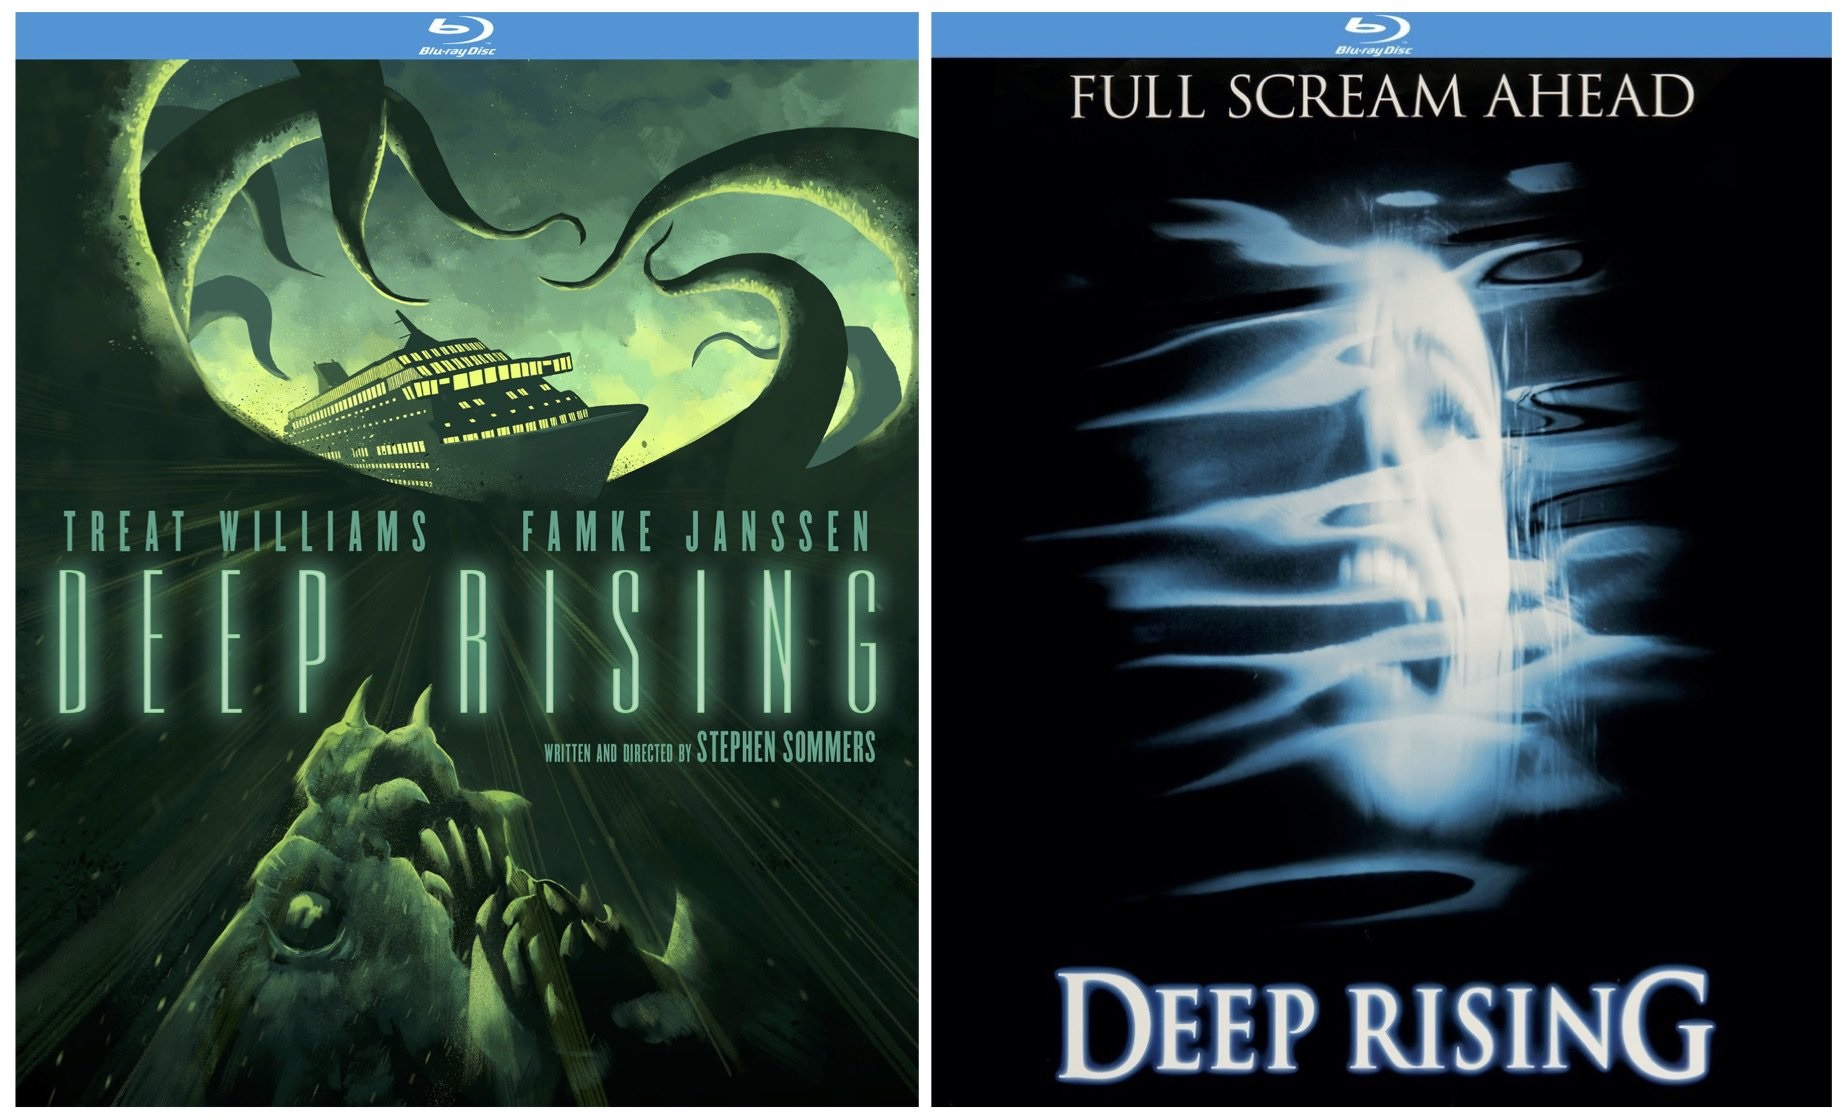 Kino Lorber Announces And Details 20th Anniversary Deep